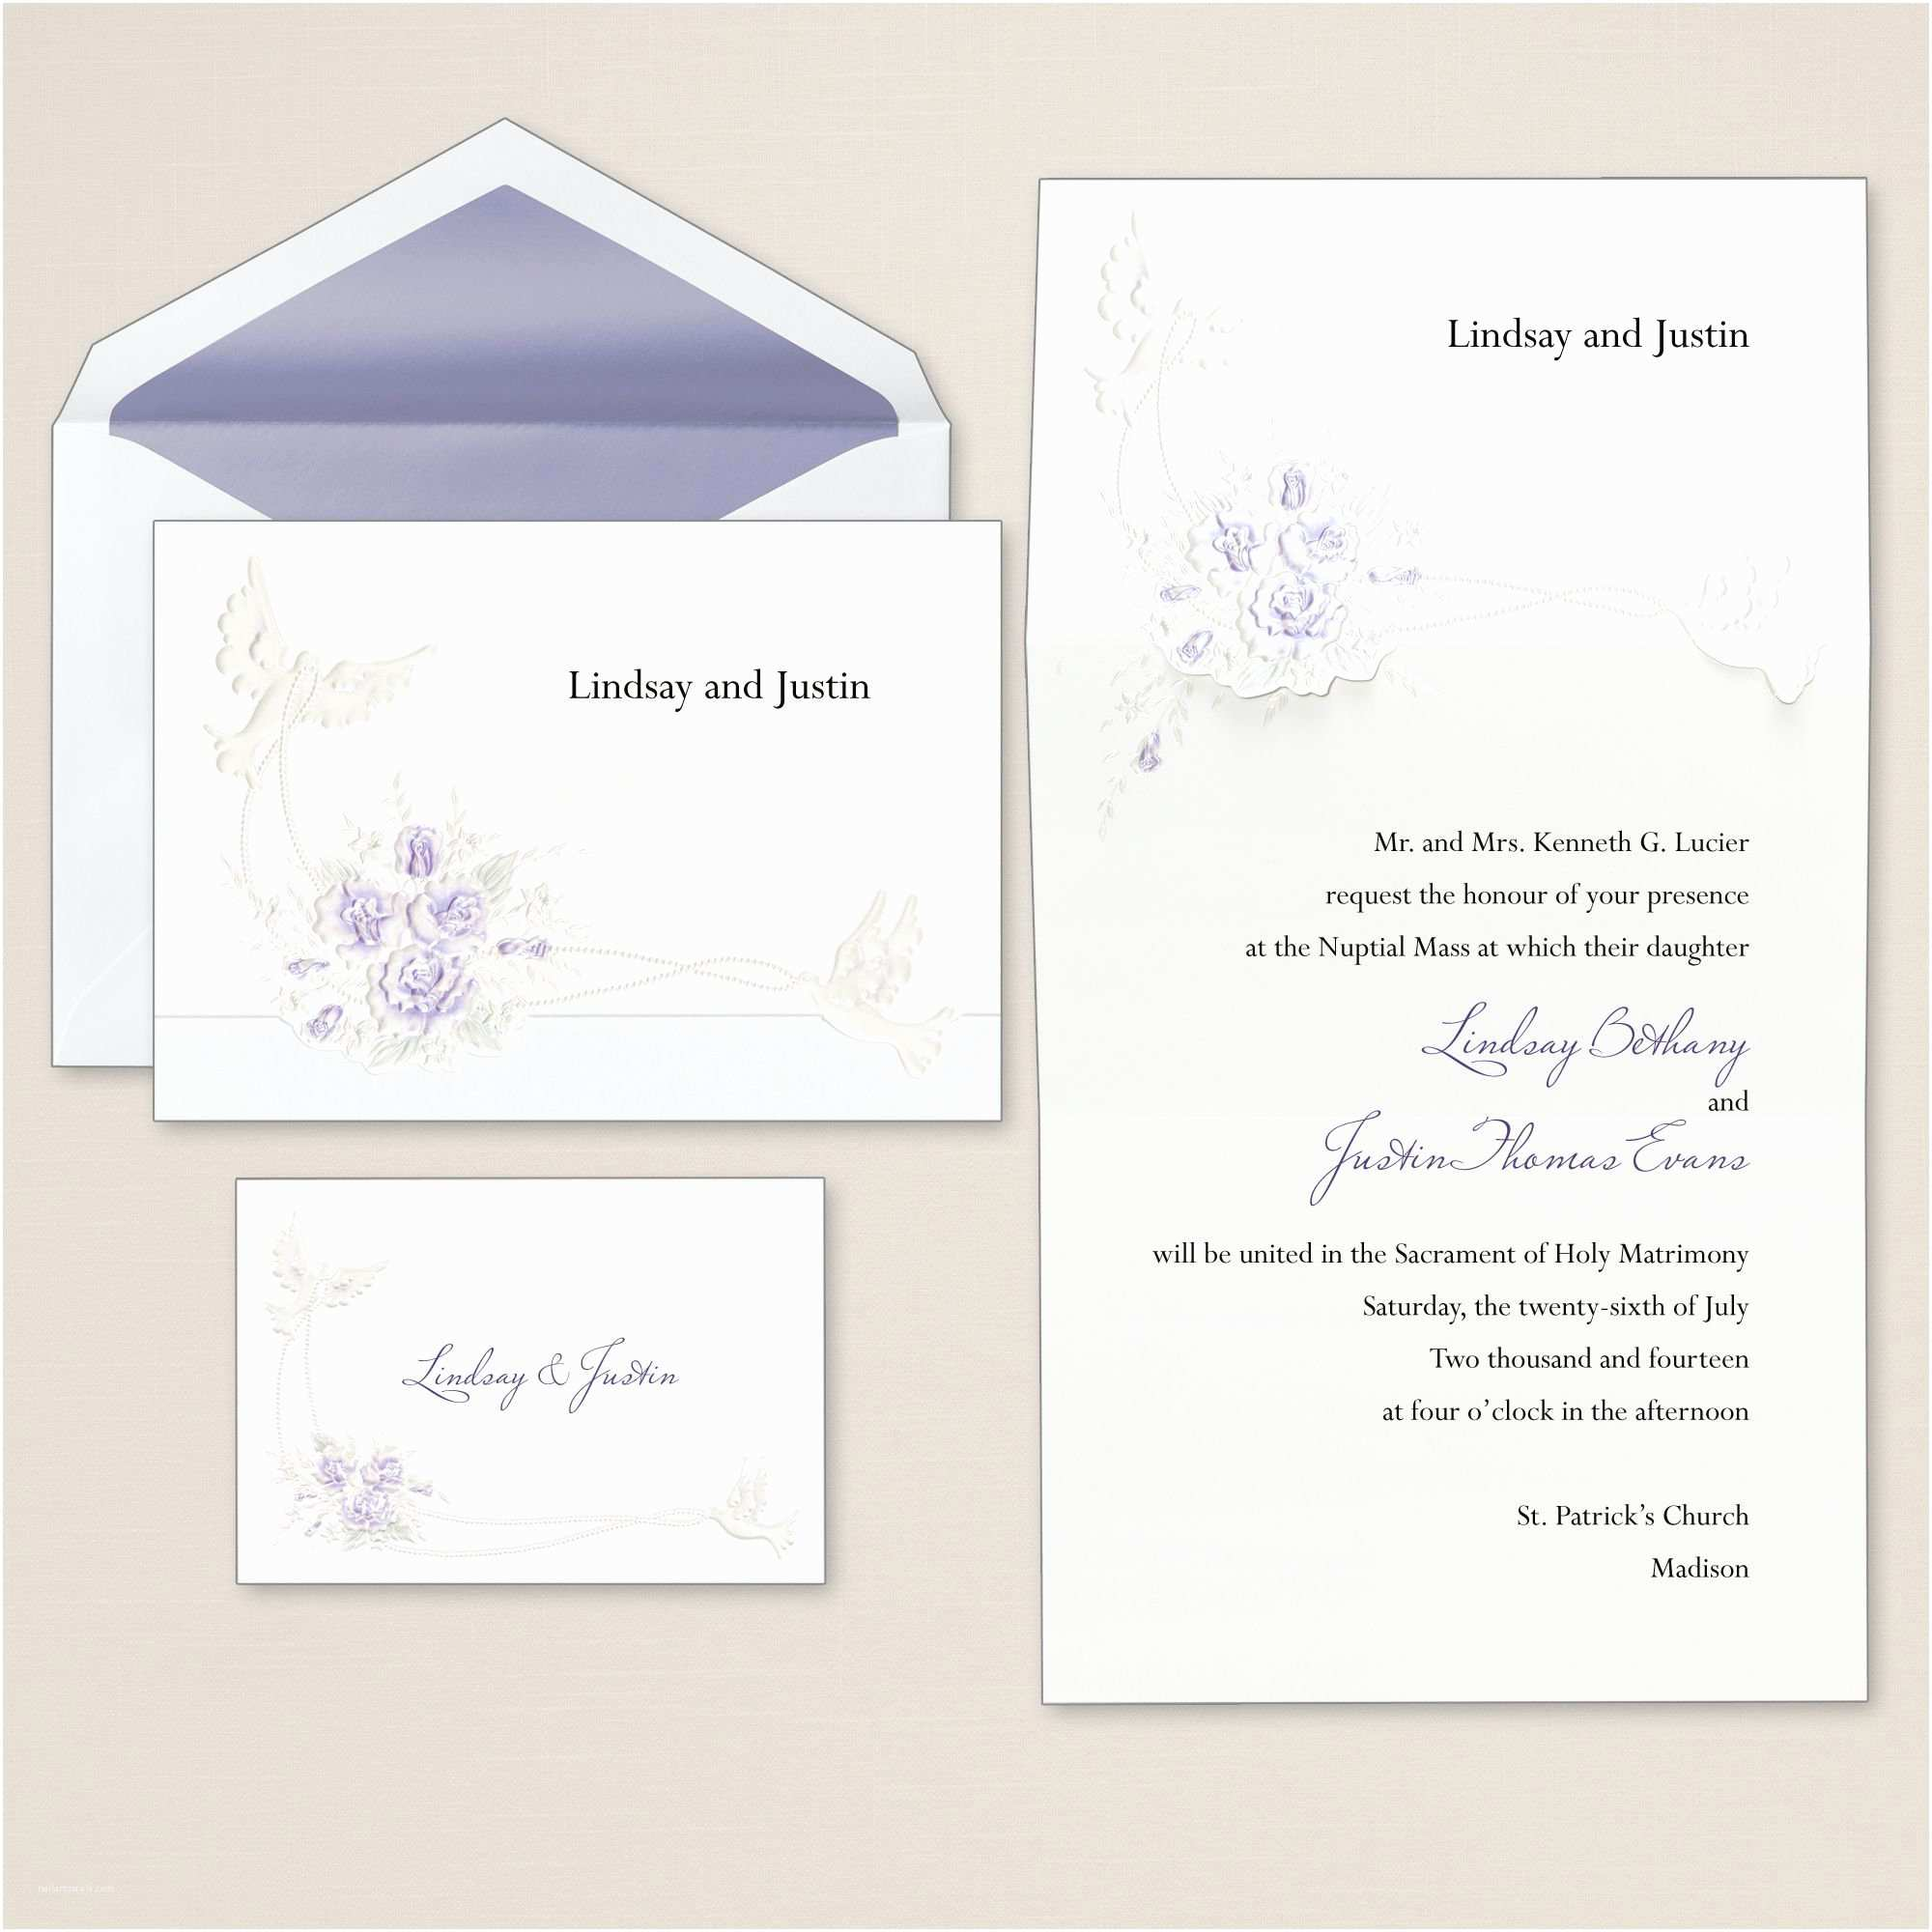 Wedding Invitations and Rsvp Wedding Invitation Wedding Invitations Reply Cards New